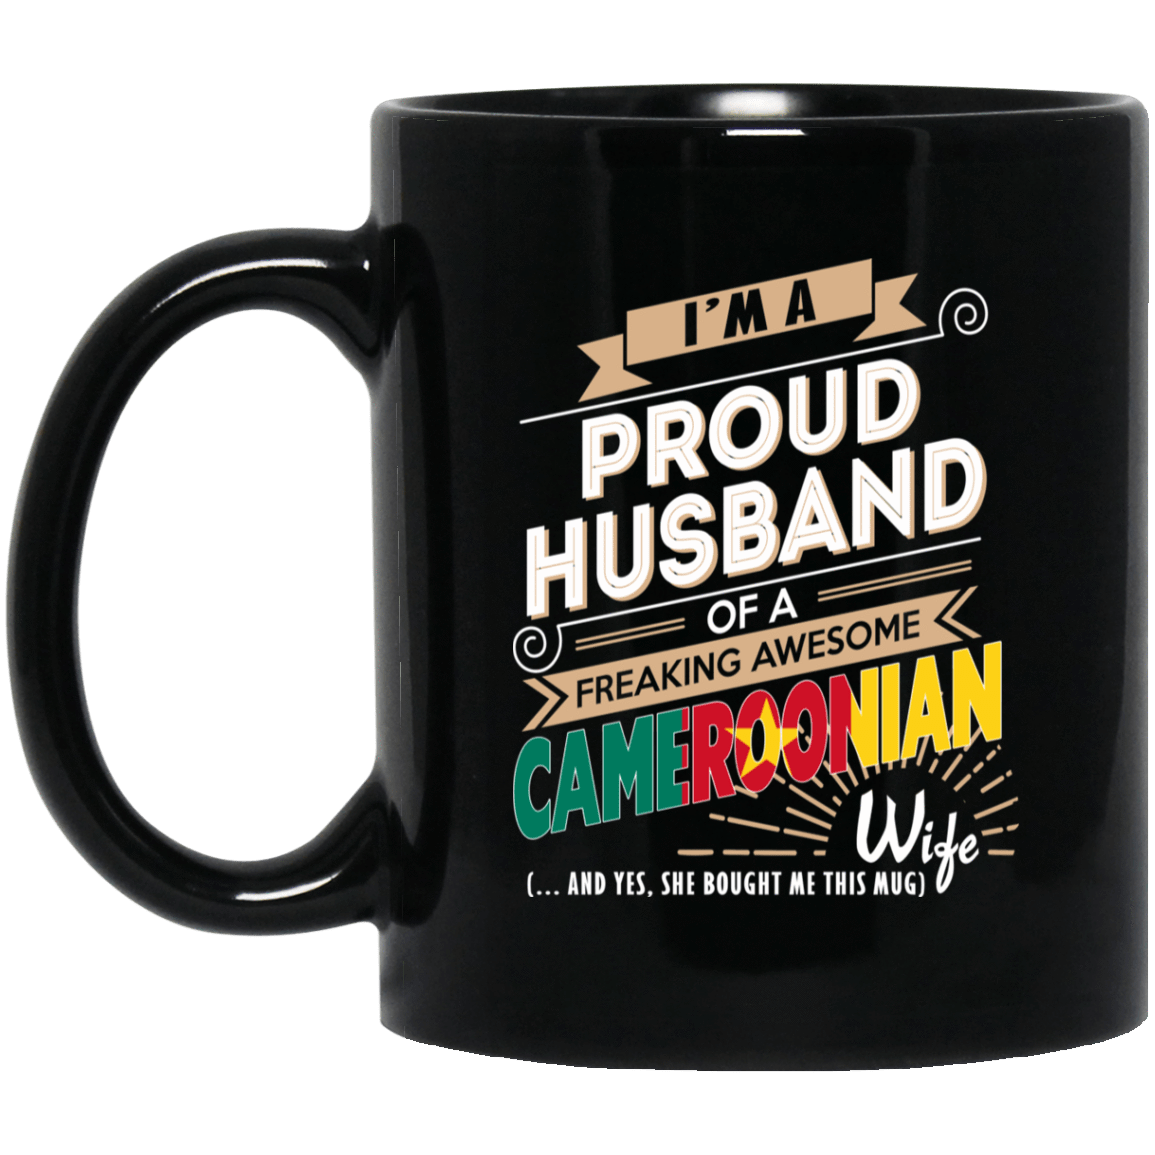 Proud Husband Of A Freaking Awesome Cameroonian Wife Mug 1065-10181-72136603-49307 - Tee Ript